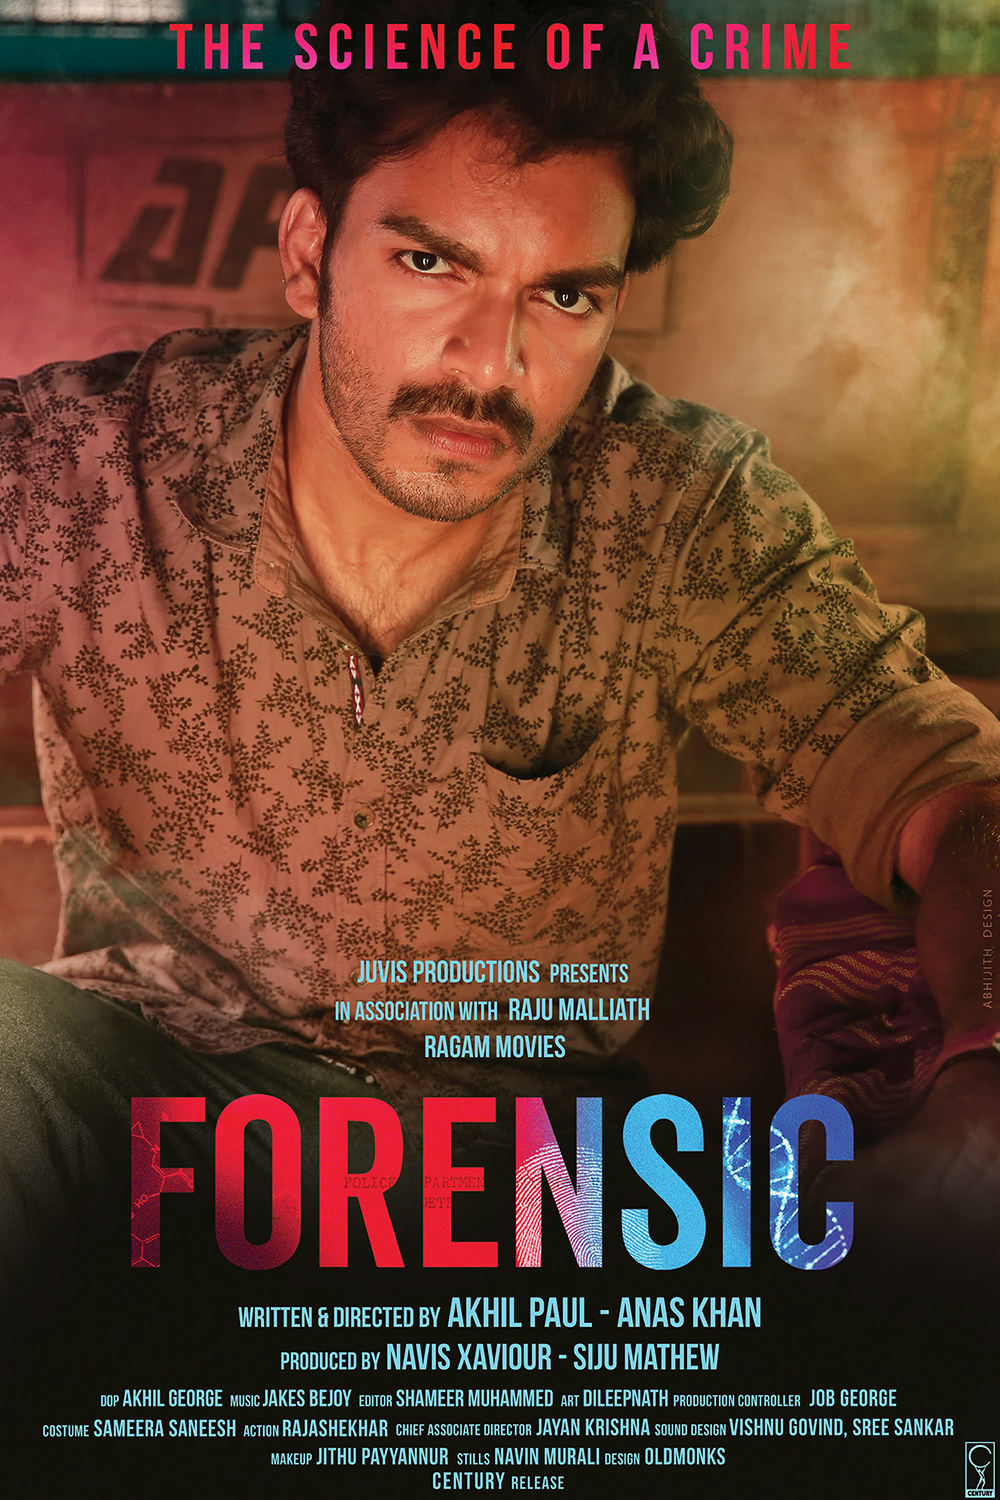 dhanesh anand, forensic, forensic malayalam movie, young malayalam movie actor, forensic movie villain, tovino thomas, ubaid in forensic, tovino thomas, reba john, mamta mohandas